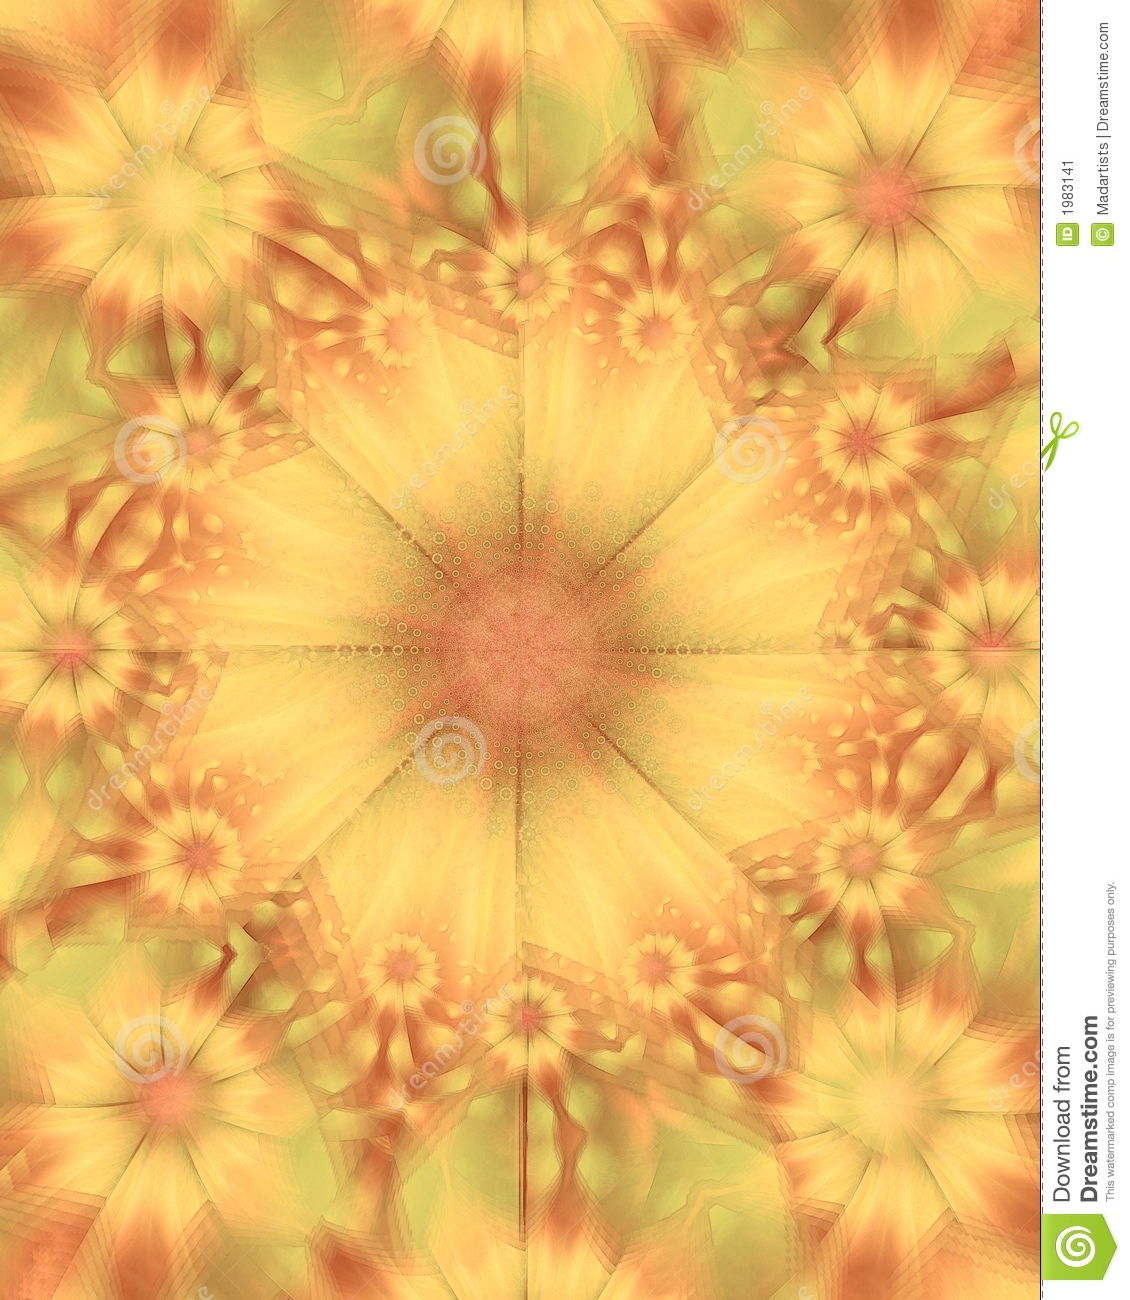 download textures gold floral - photo #30